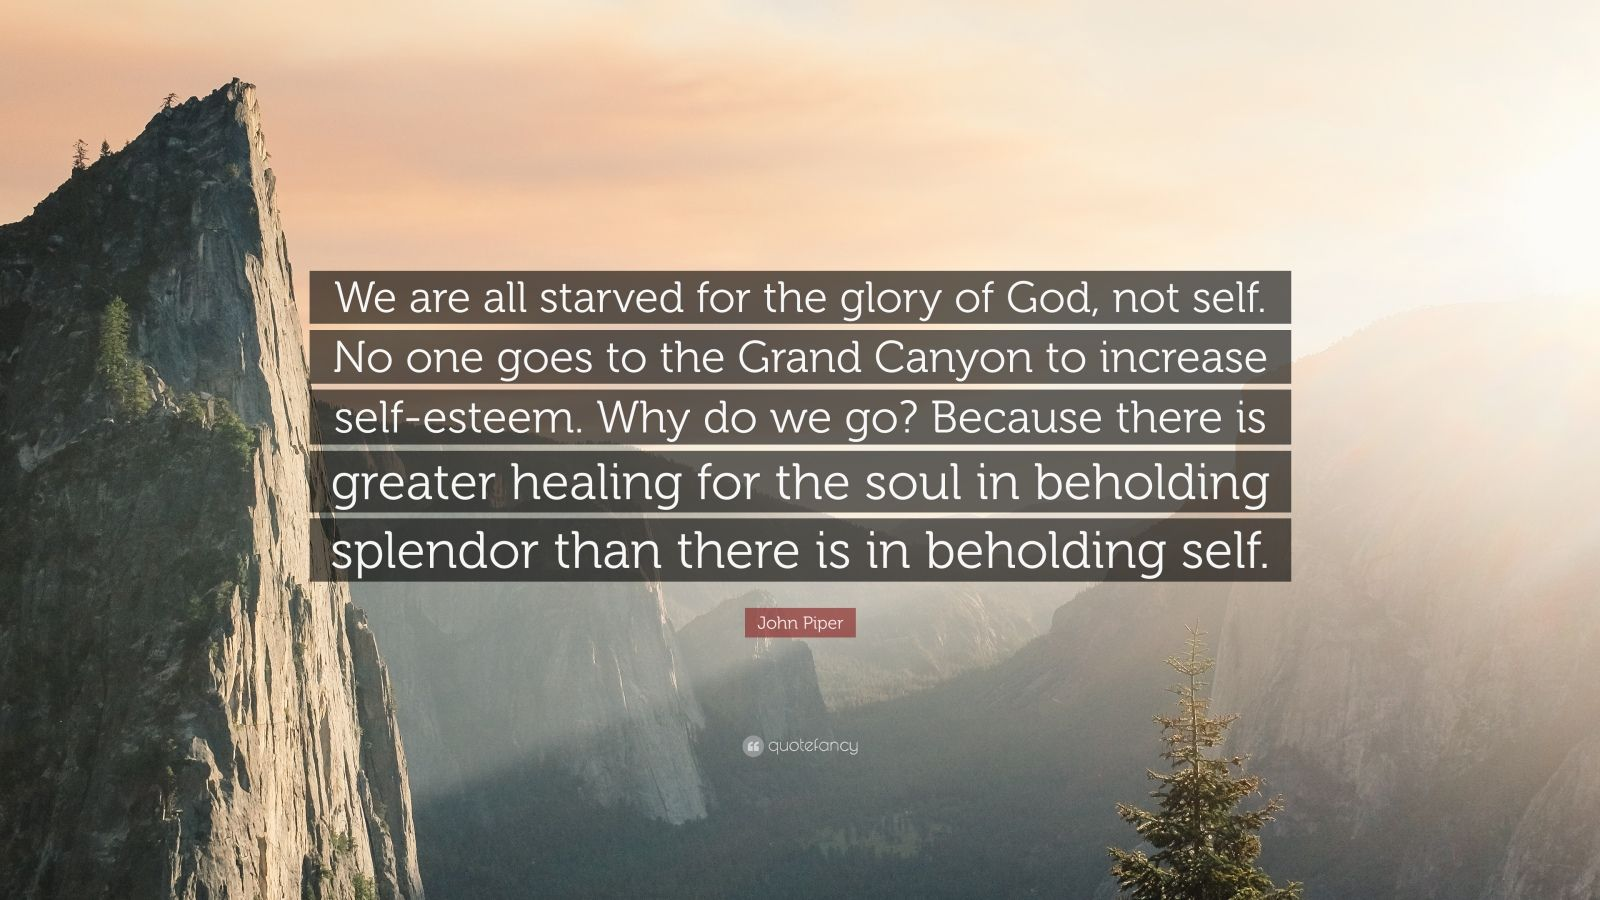 """John Piper Quote: """"We are all starved for the glory of God, not self. No one goes to the Grand Canyon to increase self-esteem. Why do we go? Because there is greater healing for the soul in beholding splendor than there is in beholding self."""""""